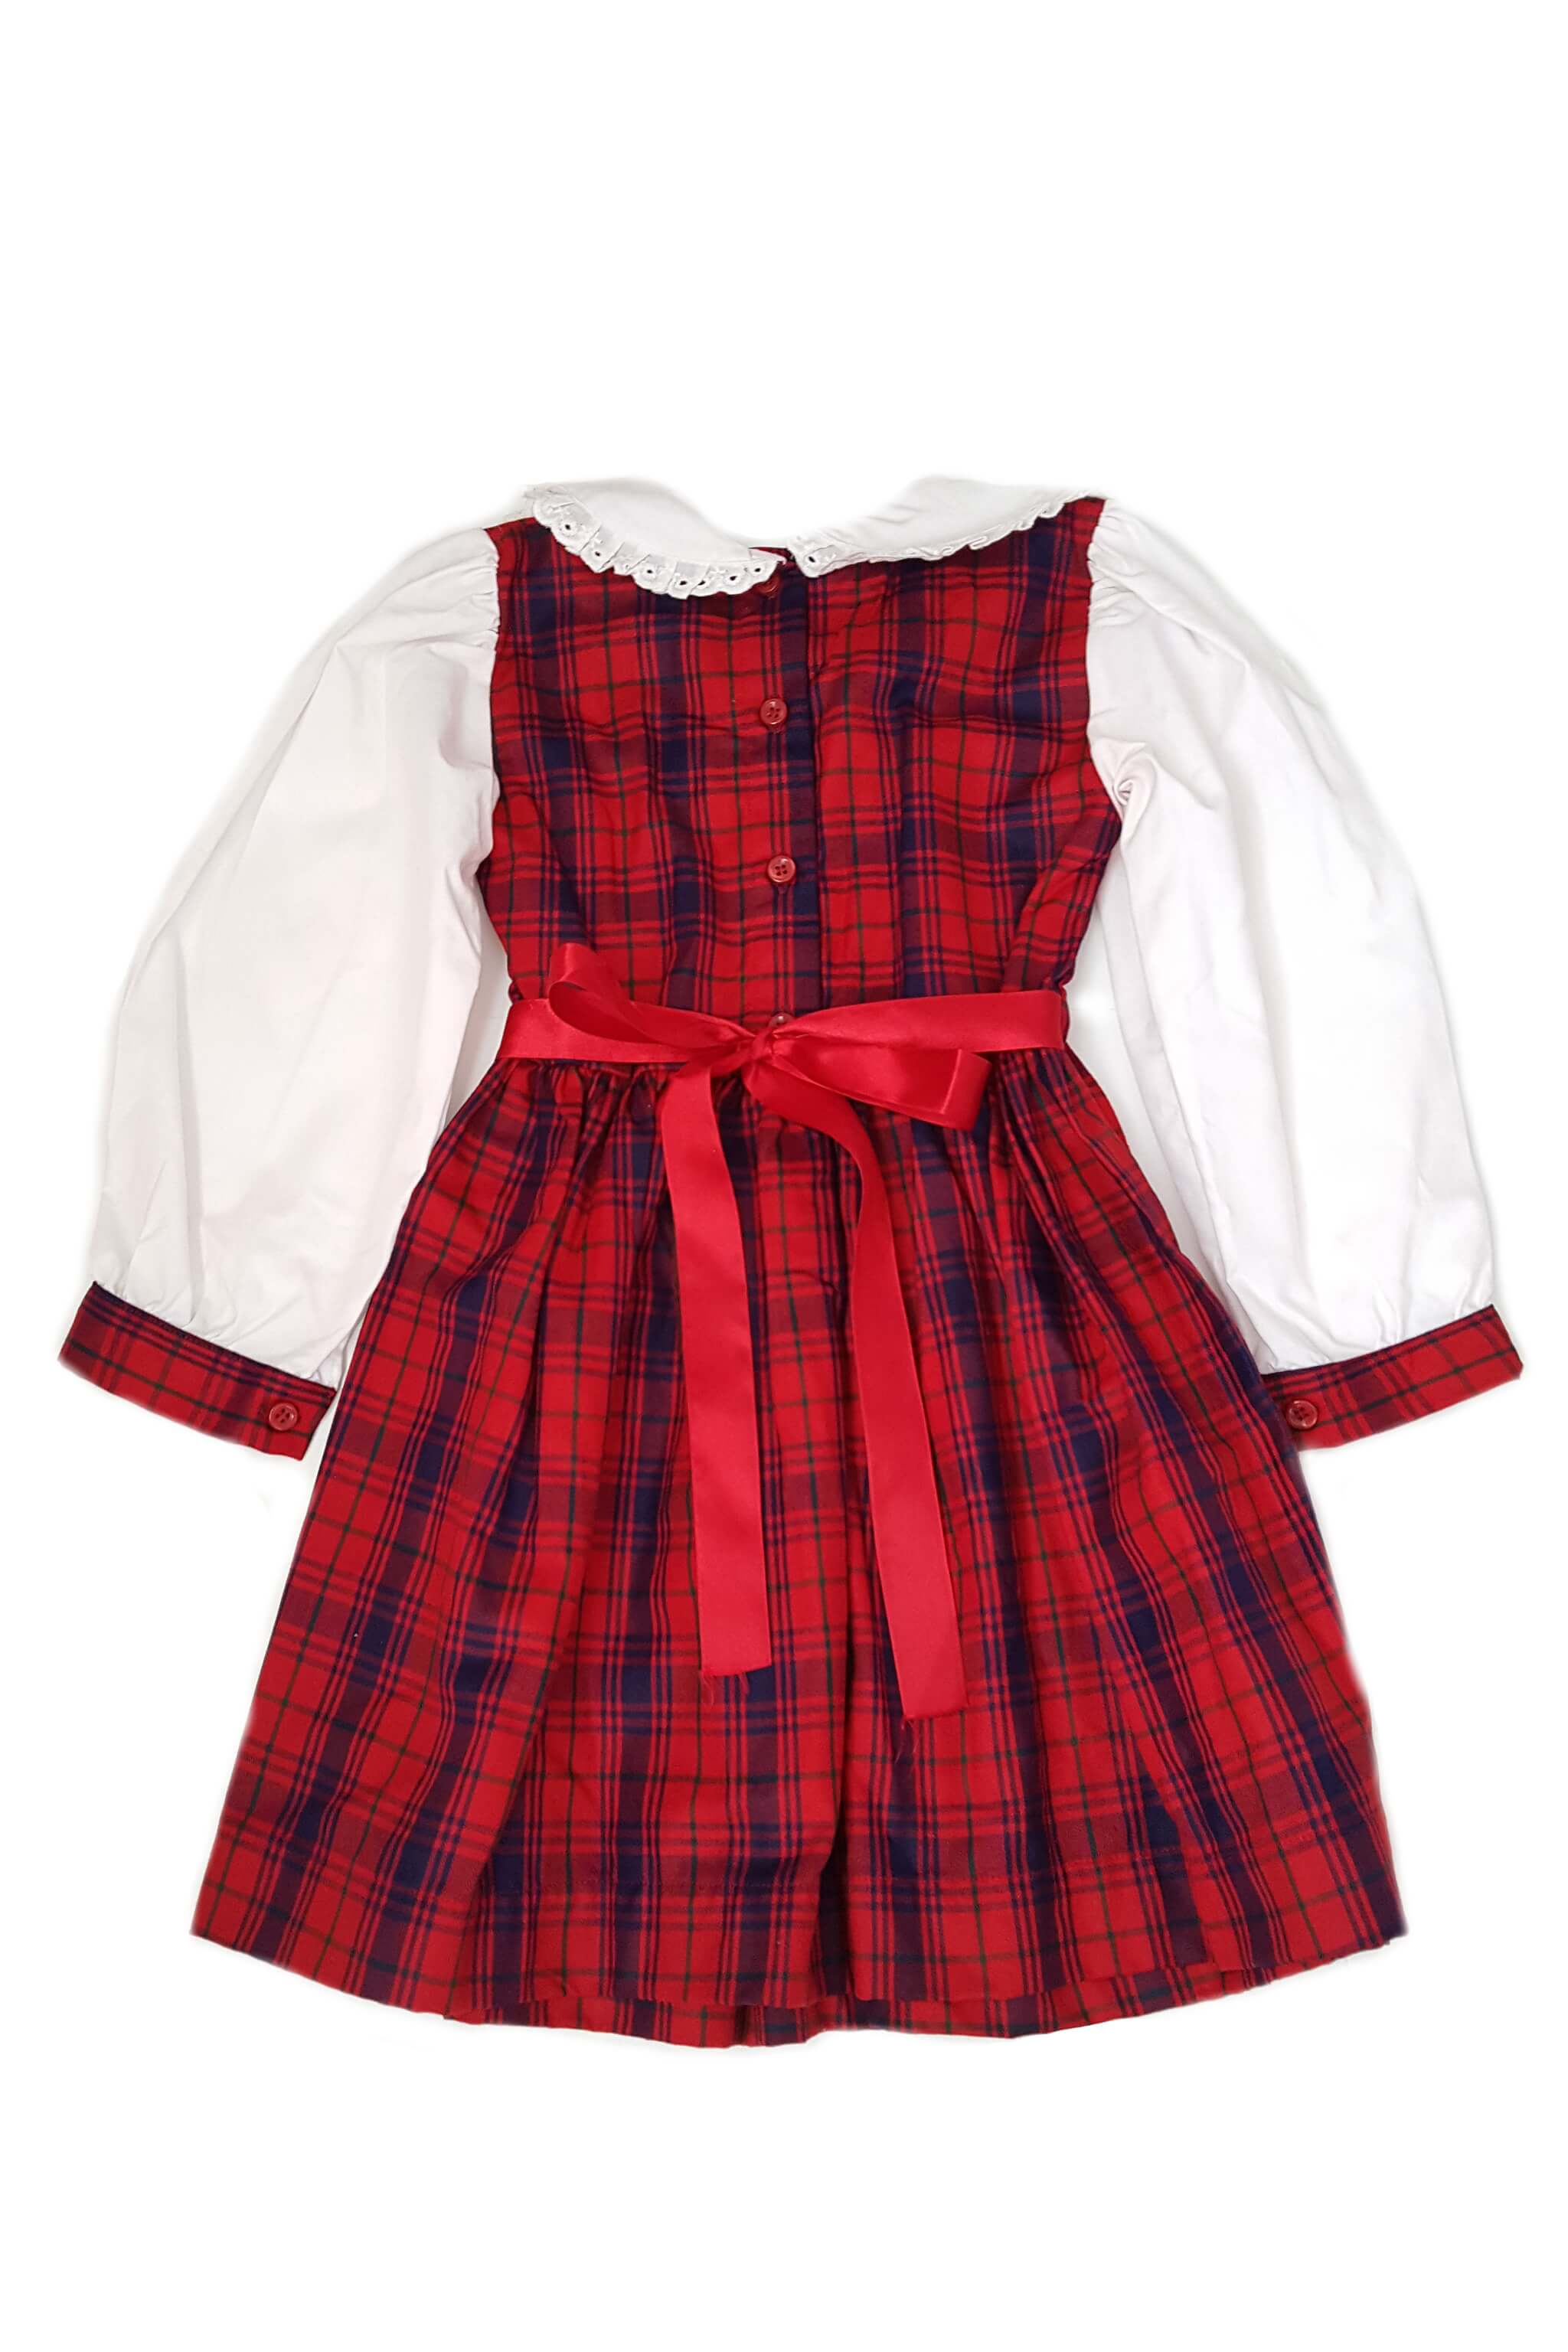 Traditional and classic red and navy plaid smocked dress with button back opening and red satin sash to tie at the waist for 2-3 year and 3-4 year old girls